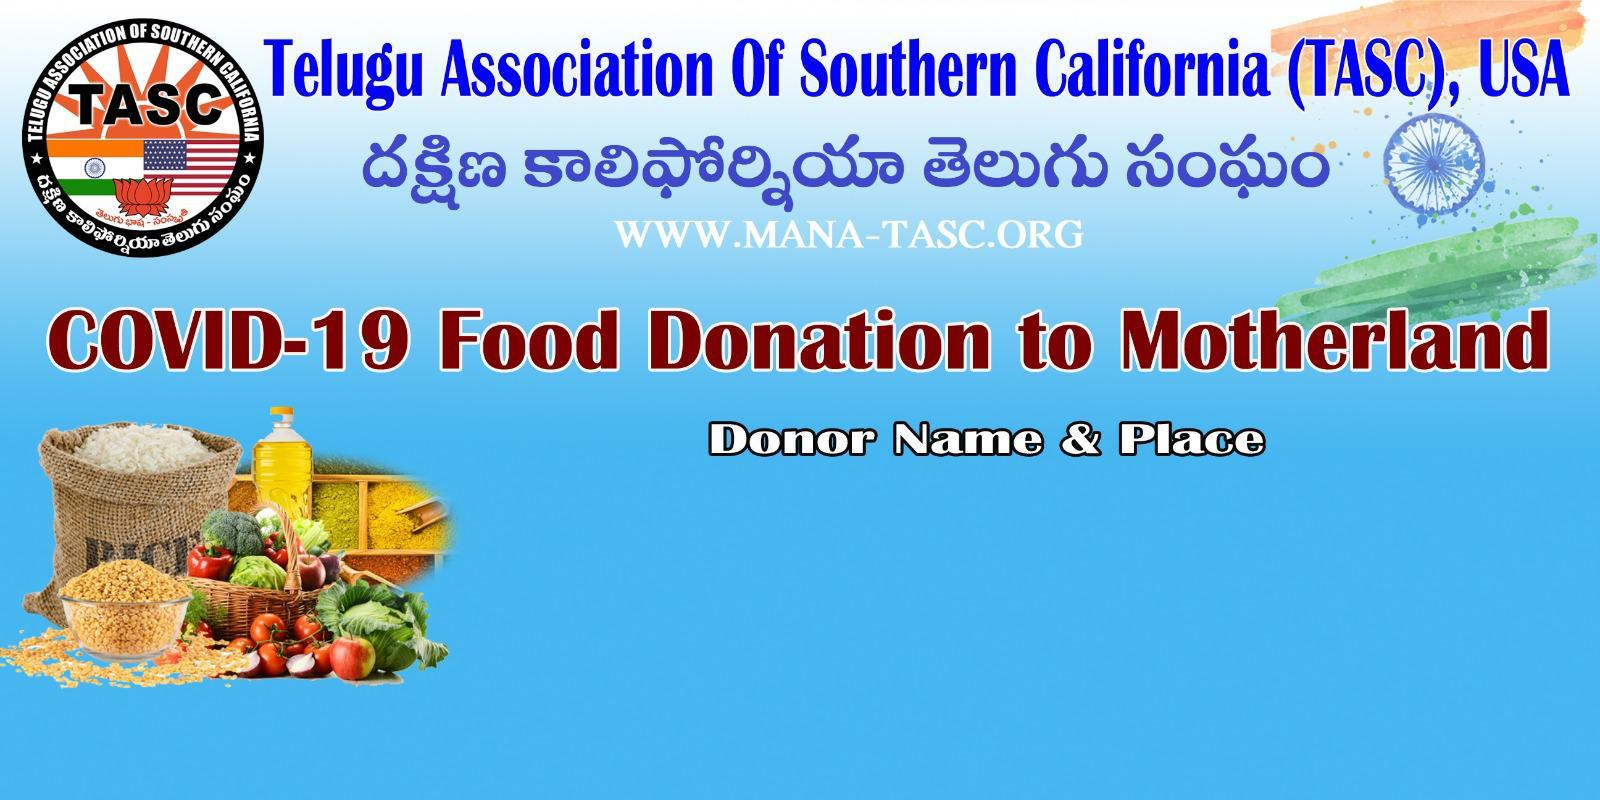 TASC MOTHERLAND FOOD DONATION